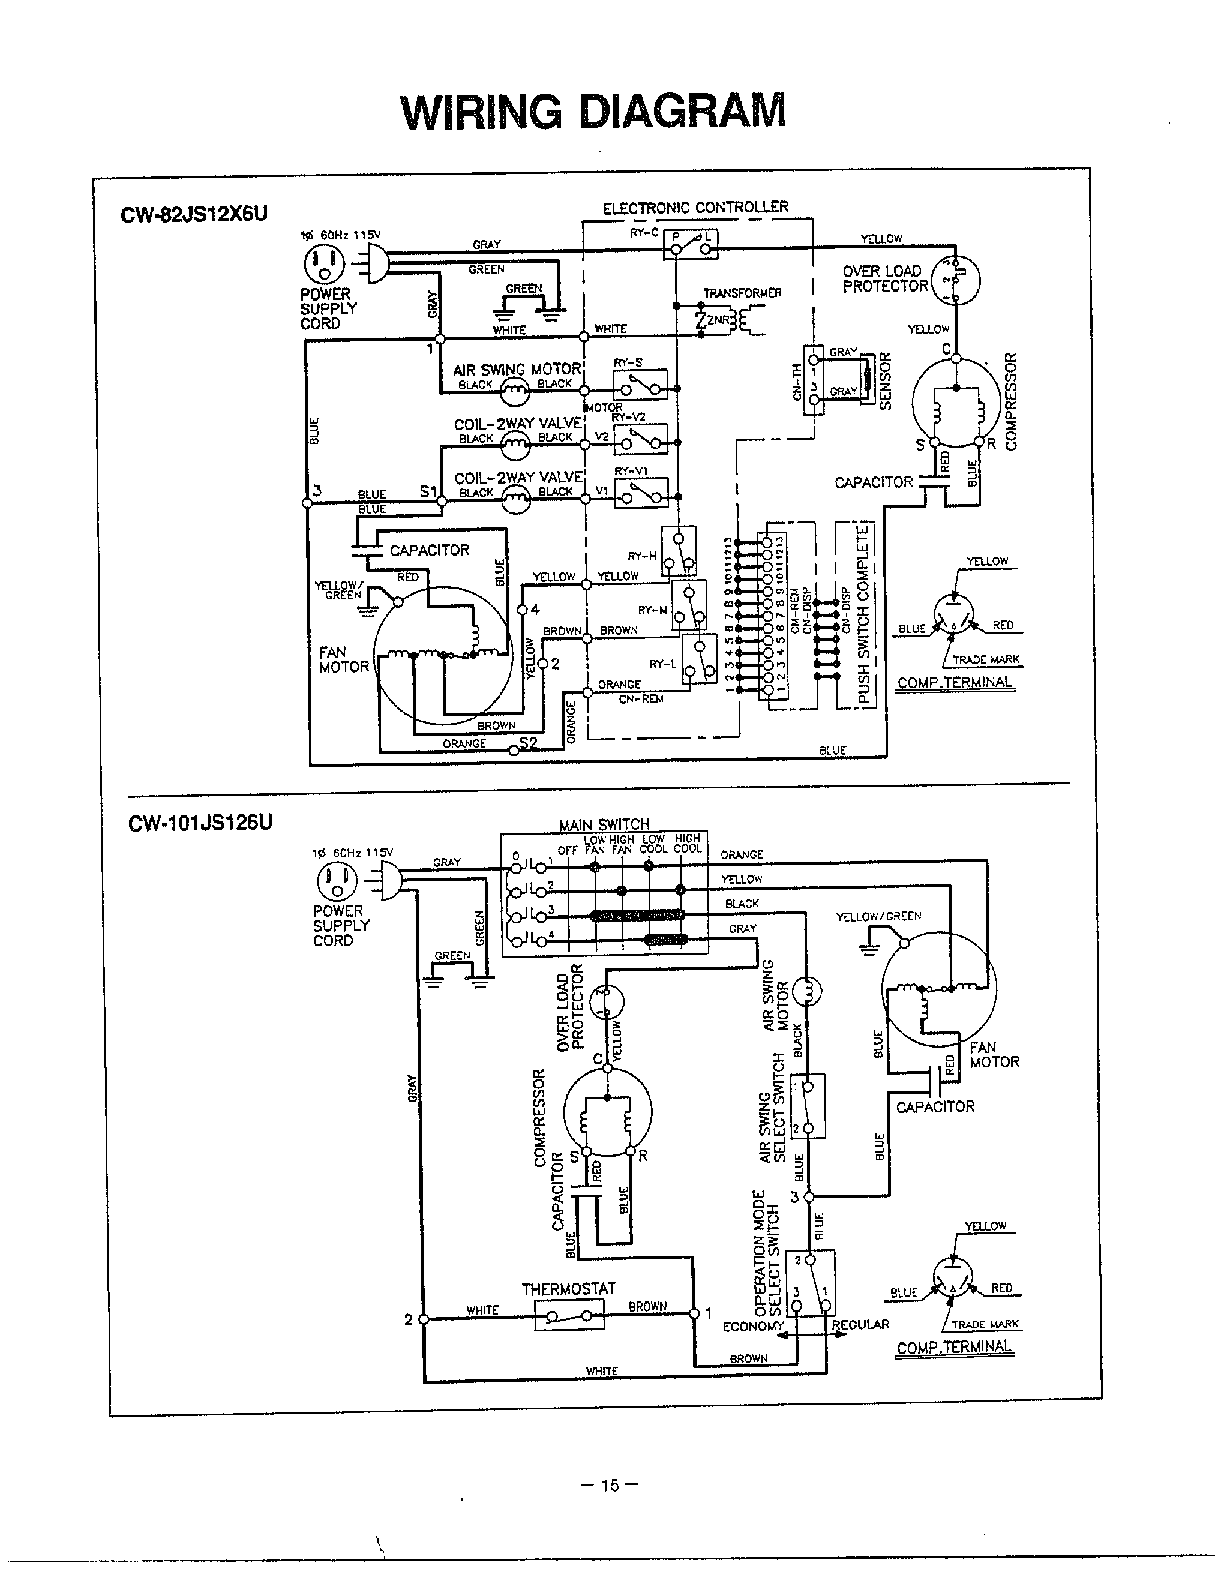 mc400 solenoid wiring diagram ezgo gas workhorse wiring diagrams rh  loridyan com